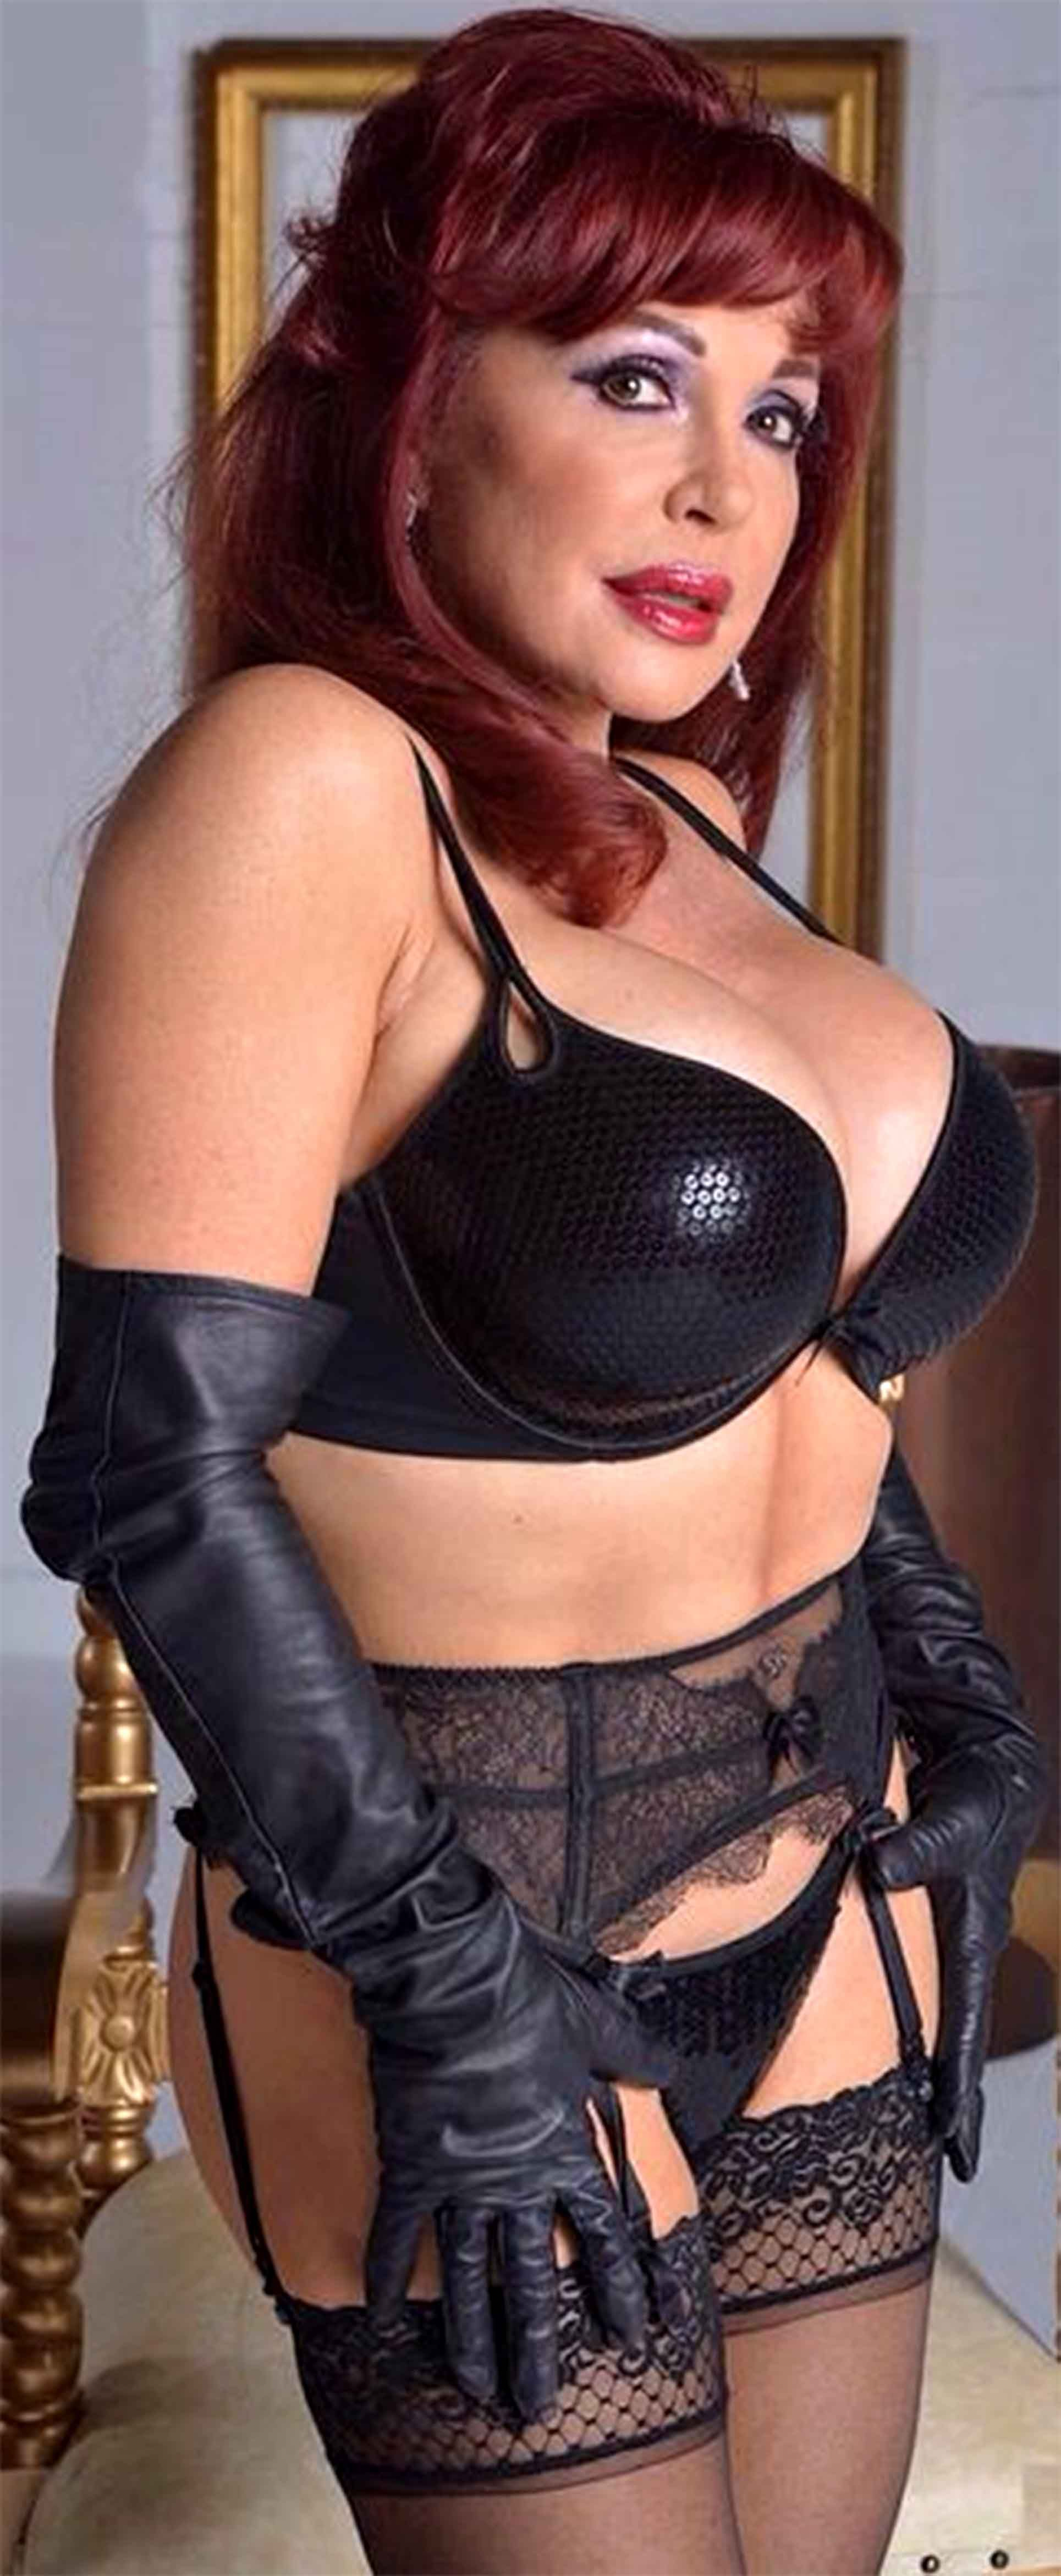 Older milf leather lingerie